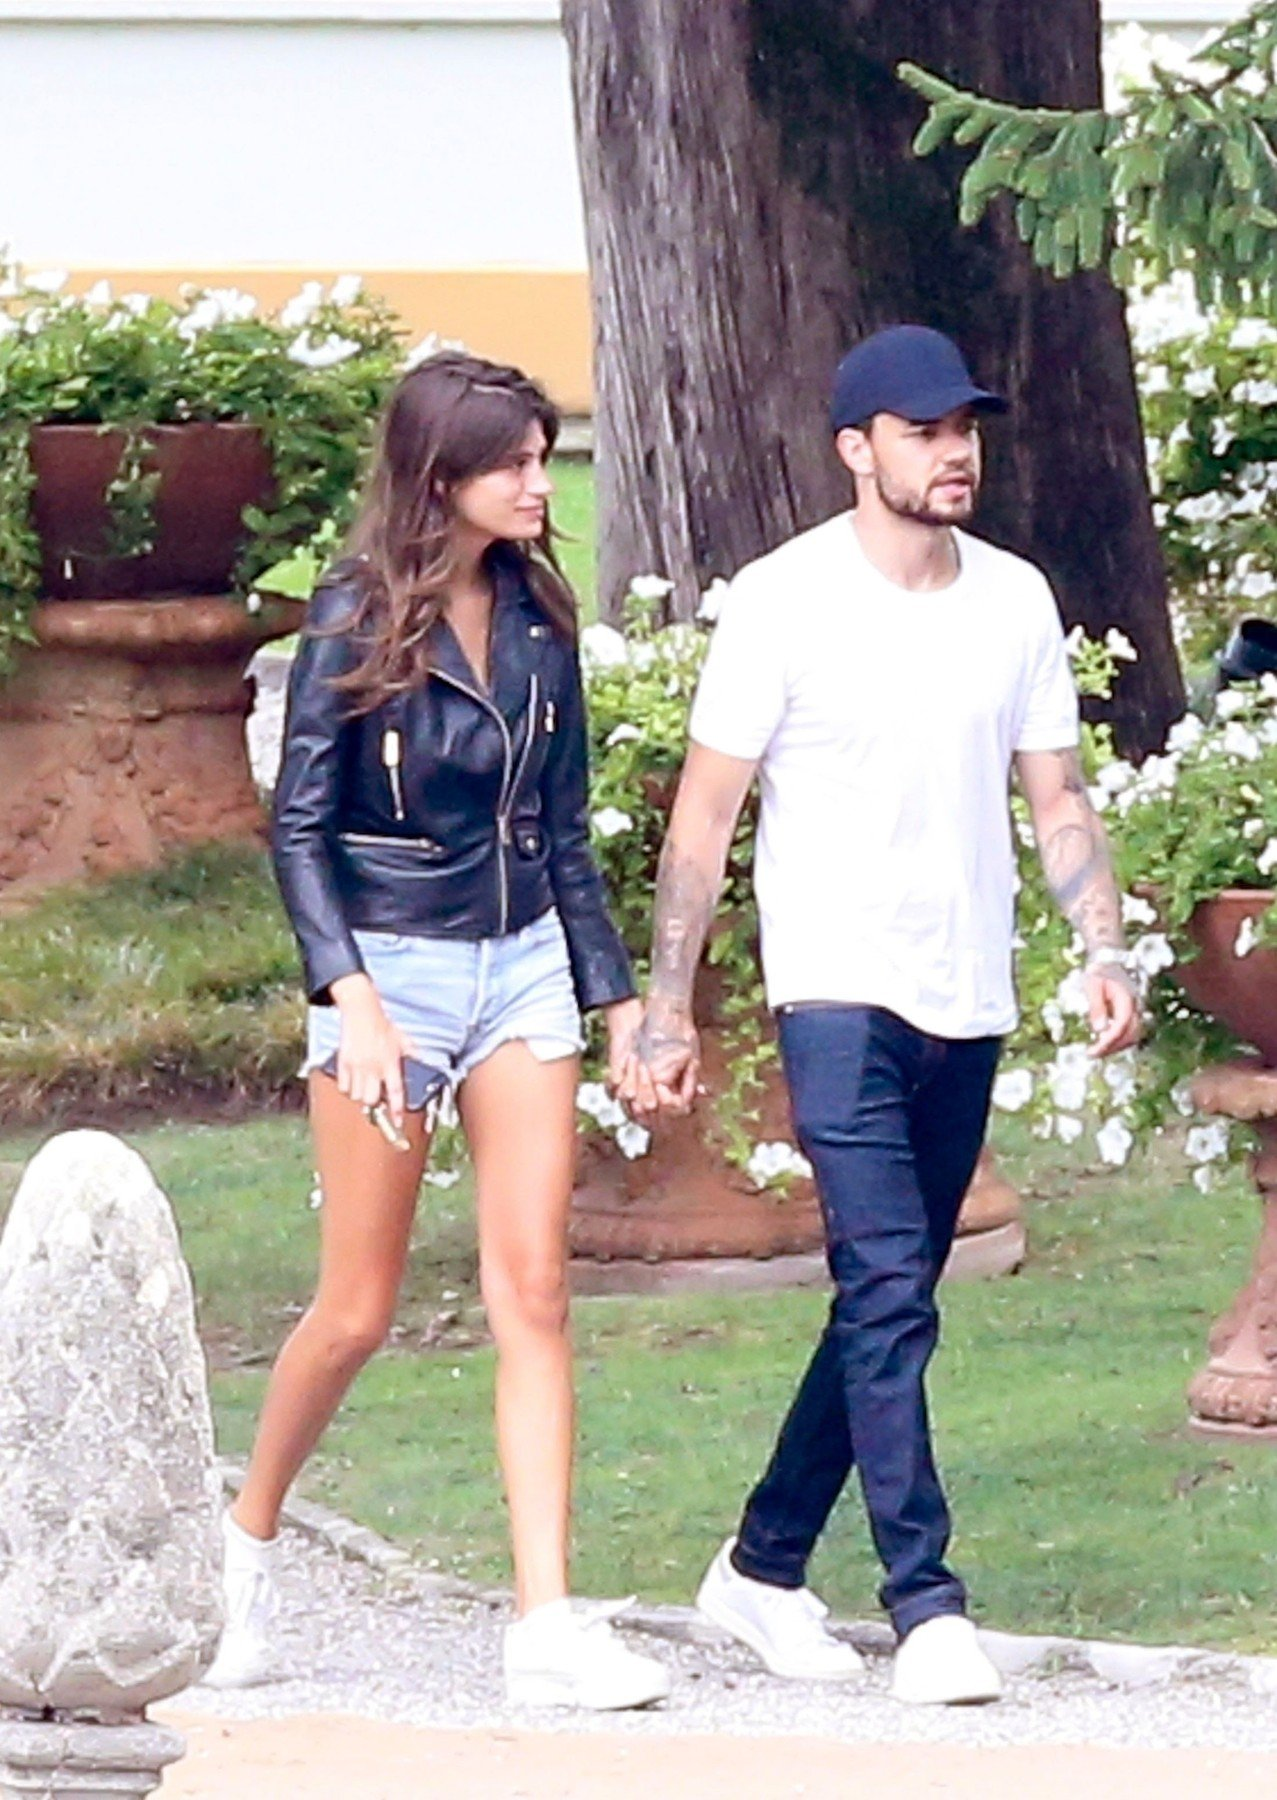 BGUK_1309664 - ** RIGHTS: WORLDWIDE EXCEPT IN FRANCE, ITALY, SPAIN, SWITZERLAND ** Como, ITALY  - *PREMIUM-EXCLUSIVE*  - MUST CALL FOR PRICING BEFORE USAGE -STRICTLY NO ONLINE USE UNTIL 19:05 PM UK TIME ON 14/8/2018 - Cheryl's EX and One Direction singer Liam Payne pictured looking loved-up with new girlfriend Cairo Dwek during their first romantic weekend in Lake Como. The two chose one of the most romantic places in the world, Lake Como. Liam arrived in Milan-Linate yesterday morning and then went to Villa D'Este (Cernobbio). Cairo was already in the hotel in Cernobbio for a few days with a friend. Today the two left from Como to Milan, Liam left Milan-Linate while Cairo left the train from Milan Central Station.  Pictured: Liam Payne    *UK Clients - Pictures Containing Children Please Pixelate Face Prior To Publication*, Image: 382427601, License: Rights-managed, Restrictions: , Model Release: no, Credit line: Profimedia, Xposurephotos